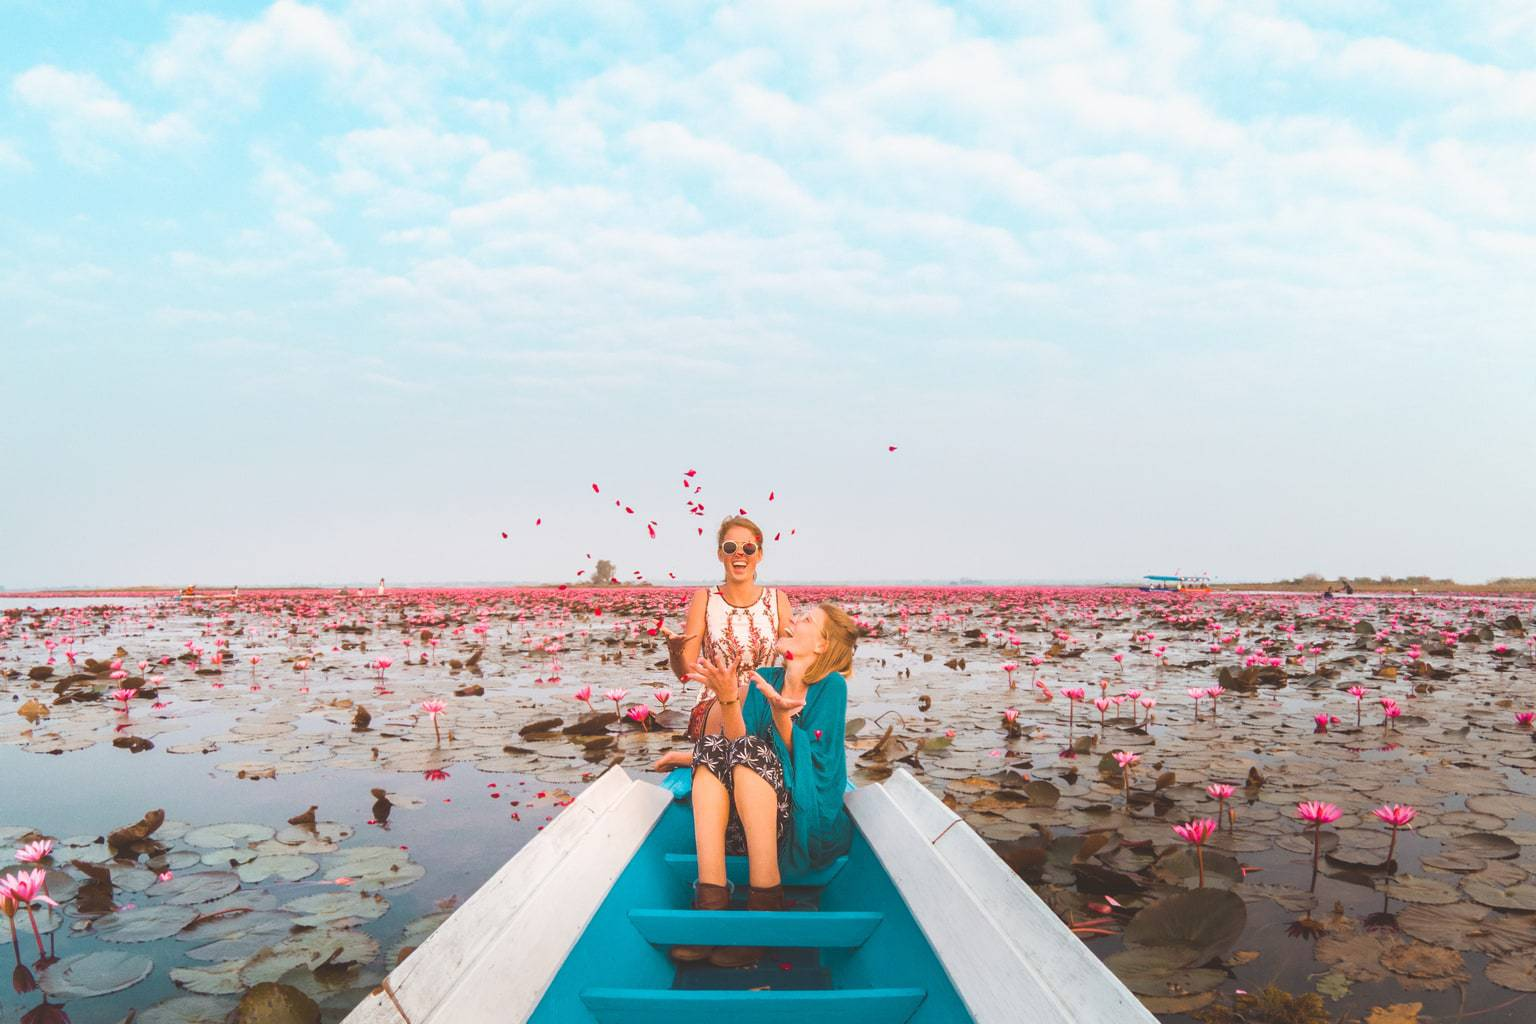 Once Upon A Journey Roxanne and Maartje a Lesbian travel couple on the red lotus lake in Thailand. Sitting on a boat surrounded by pink lotus sea, sprinkling rose leaves in the air celebrating love celebrating valentine's day 2018